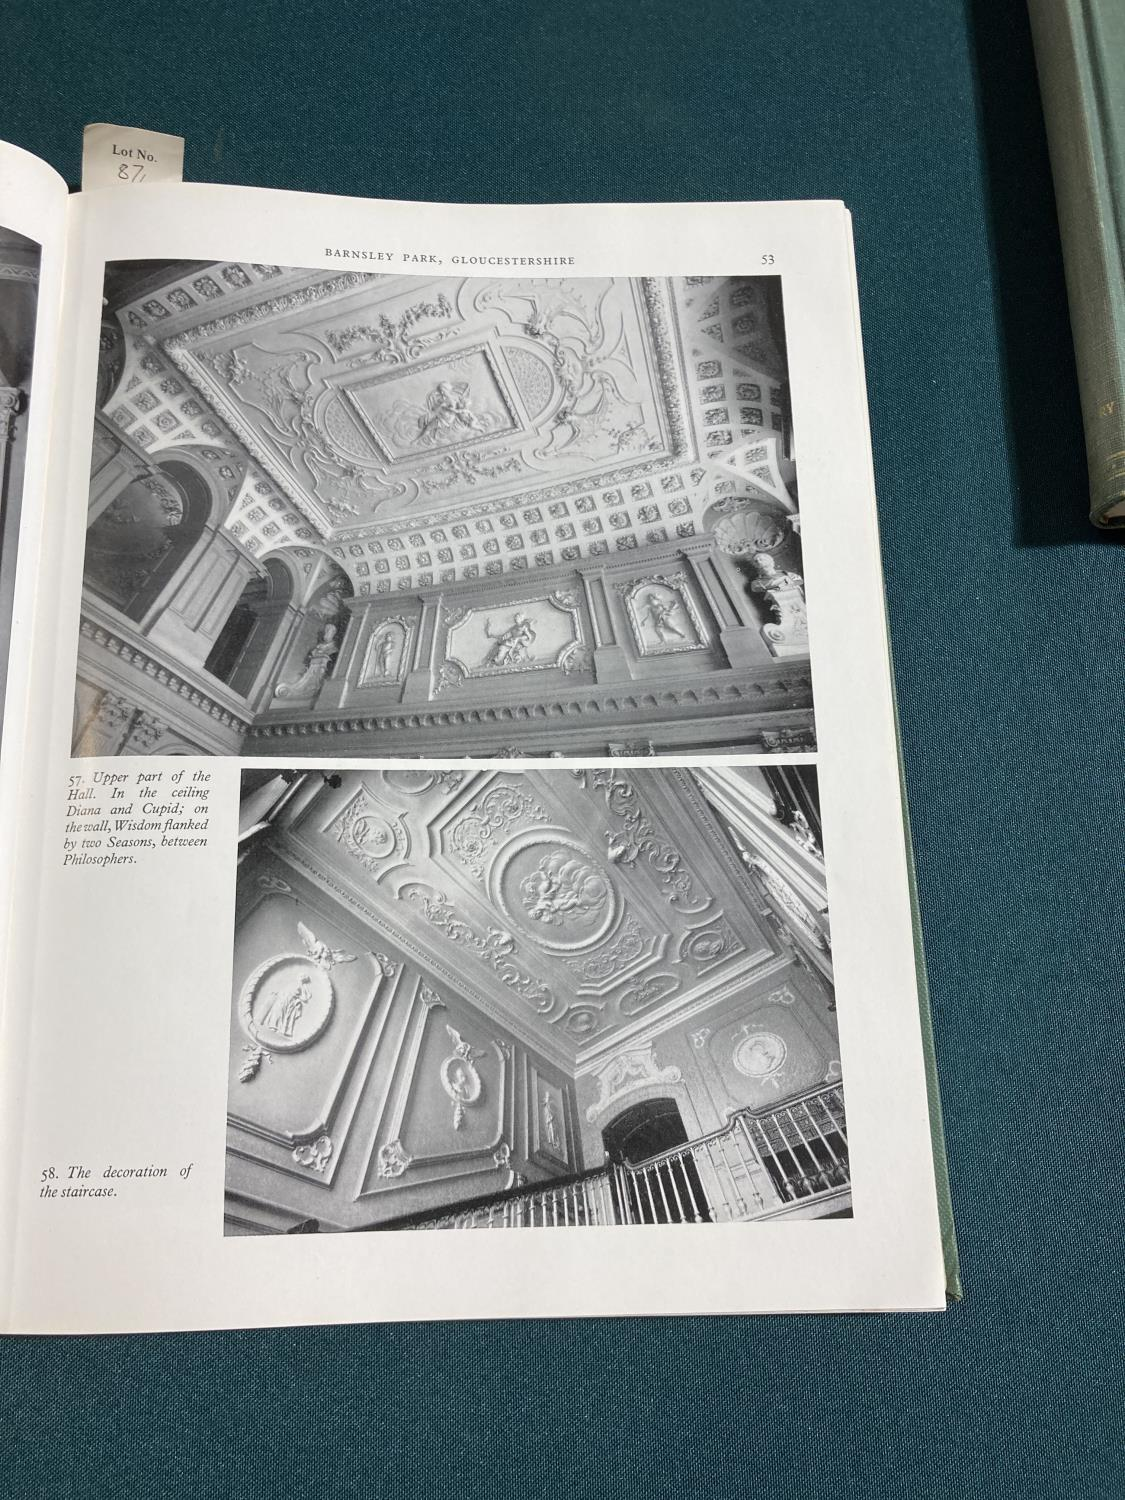 Bolton, Arthur T. The Architecture of Robert and James Adam, 2 volumes, first edition, plates, - Image 15 of 22